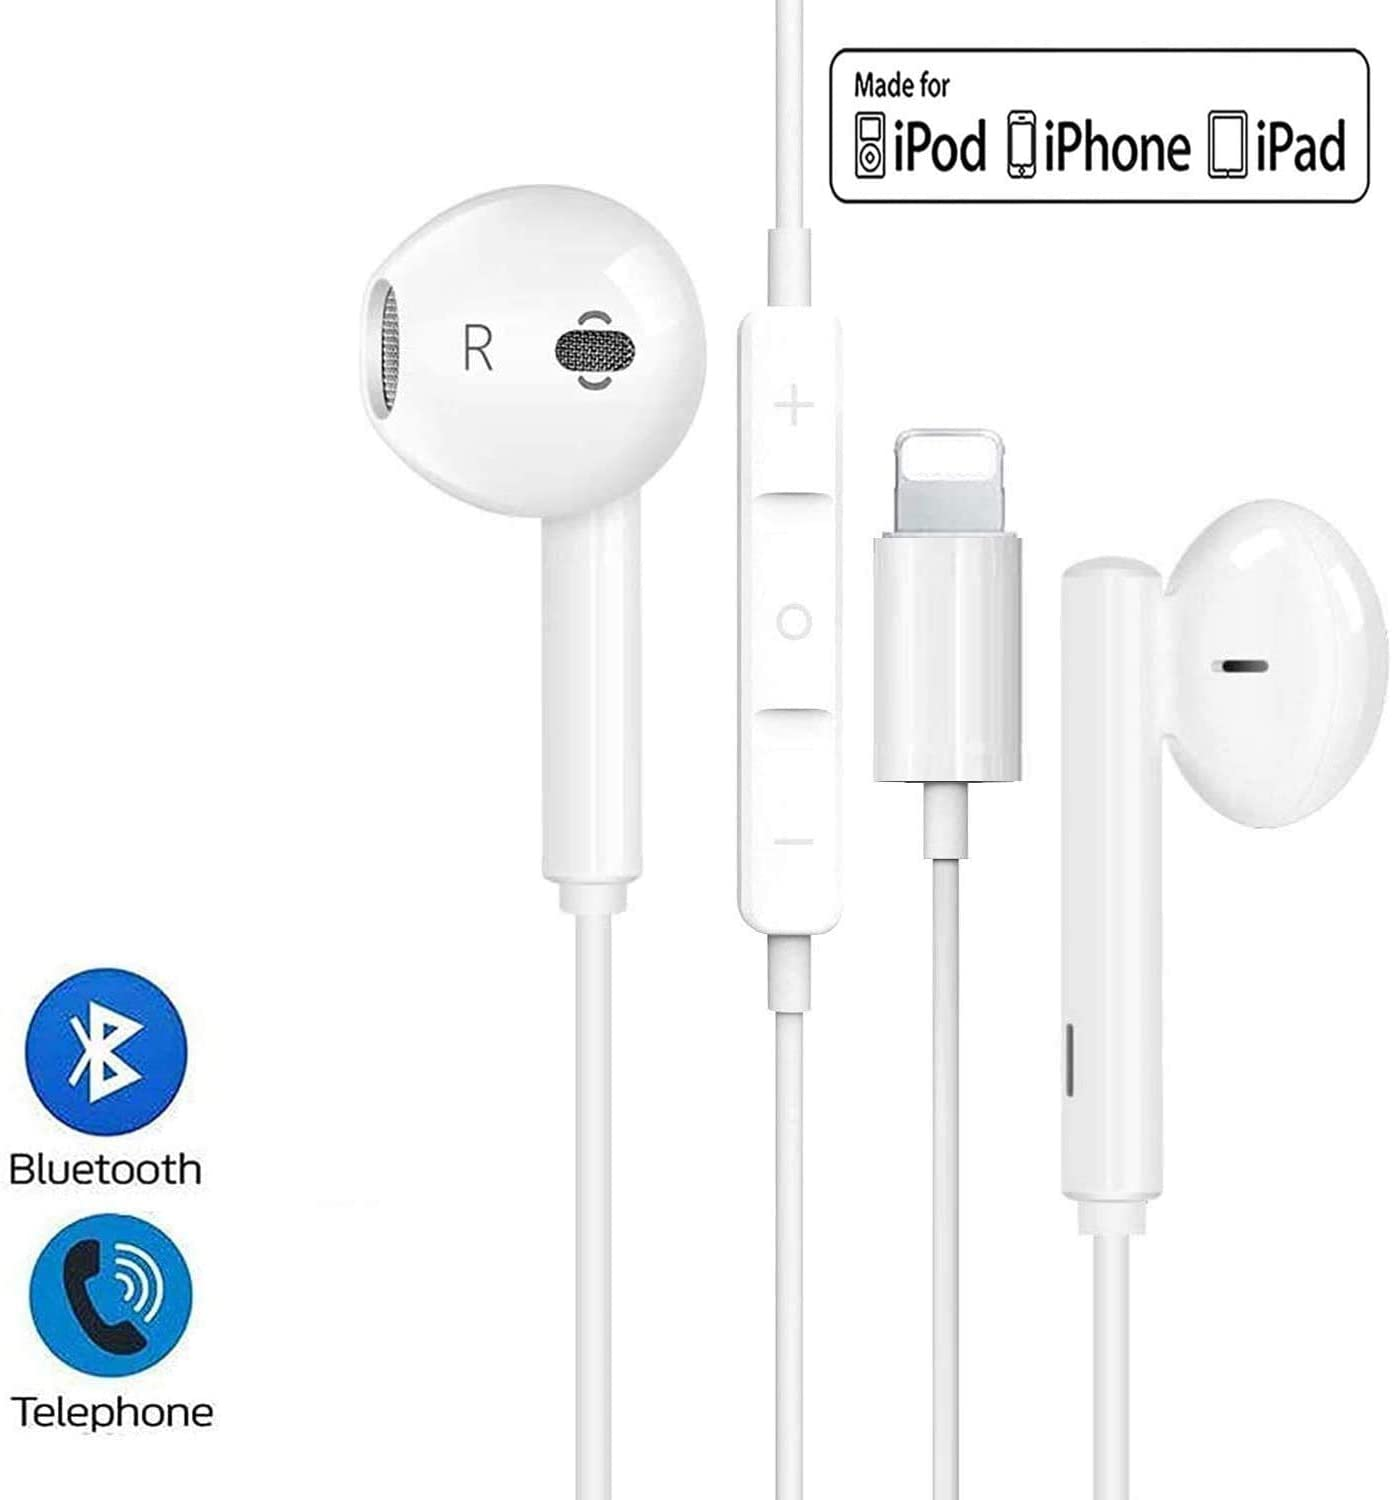 Lighting Headphones/Earphones/Earbuds, Built-in Microphone and Volume Control,Suitable for Apple iPhone 11 Pro Max/X/XS/XS MAX/XR/8/8P/7/7P/iPad Pro/iPad Air/iPad Mini/iPod